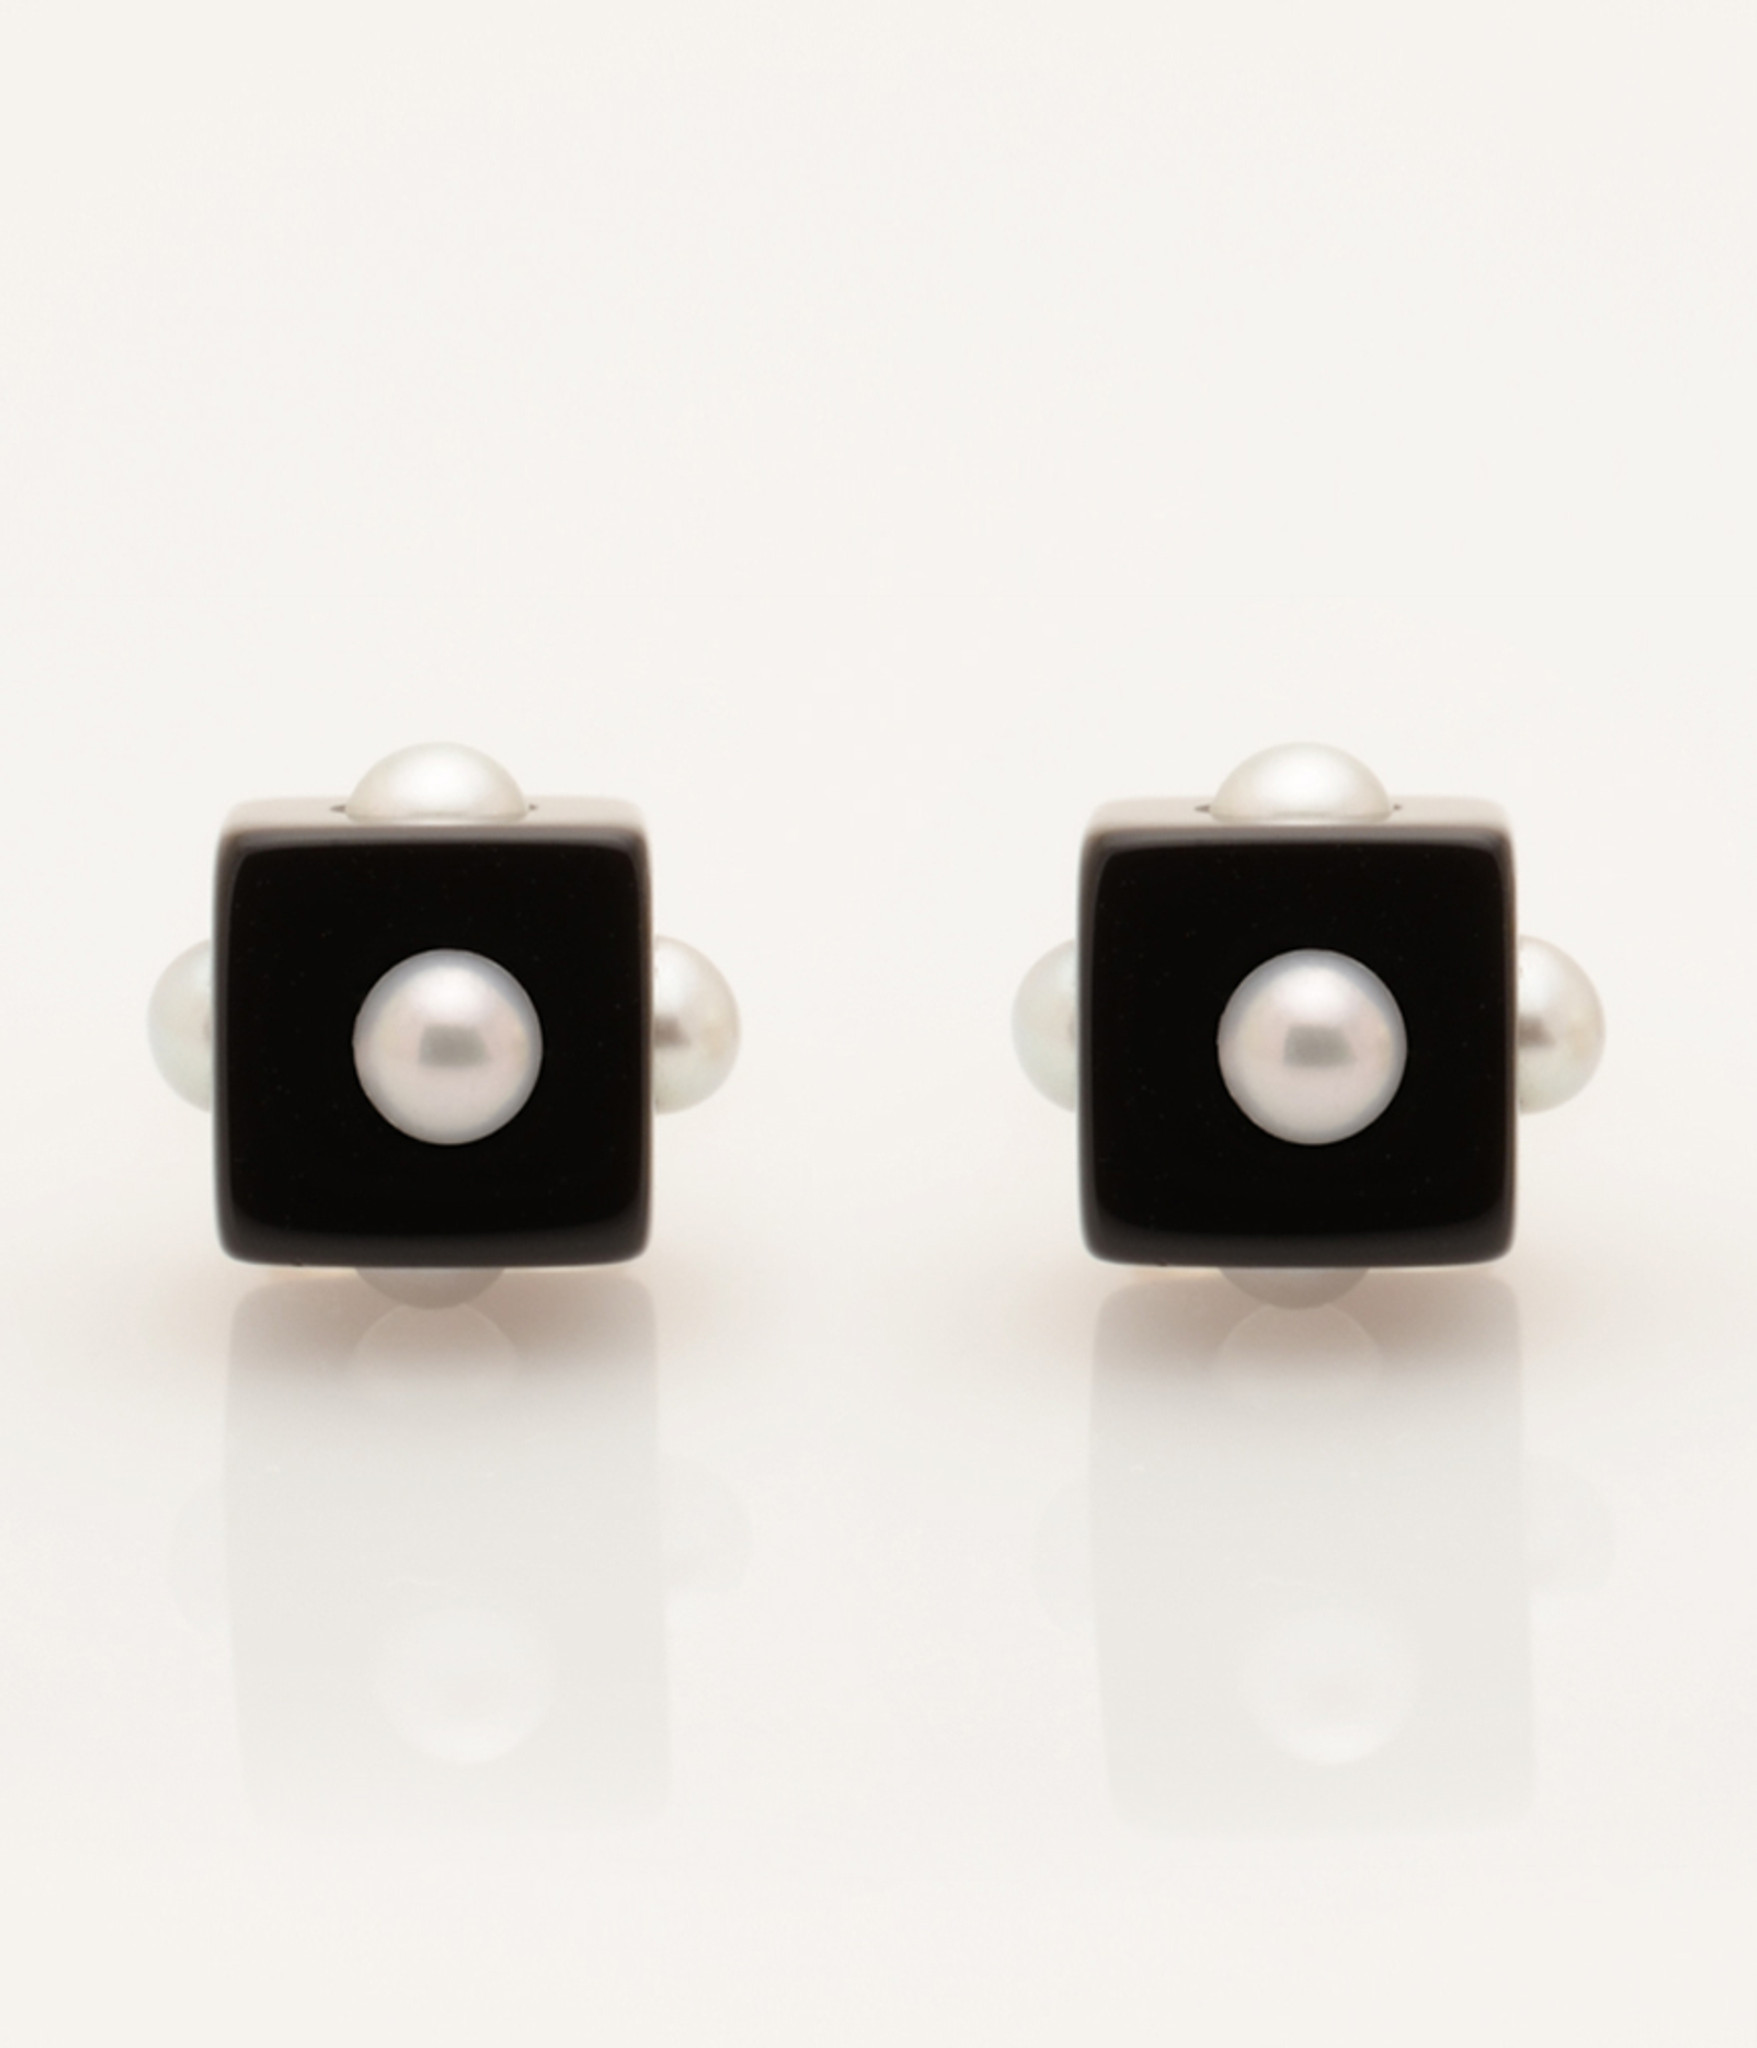 Mini Pearl Onyx Cube Earrings with 14k Gold Post by Nektar De Stagni